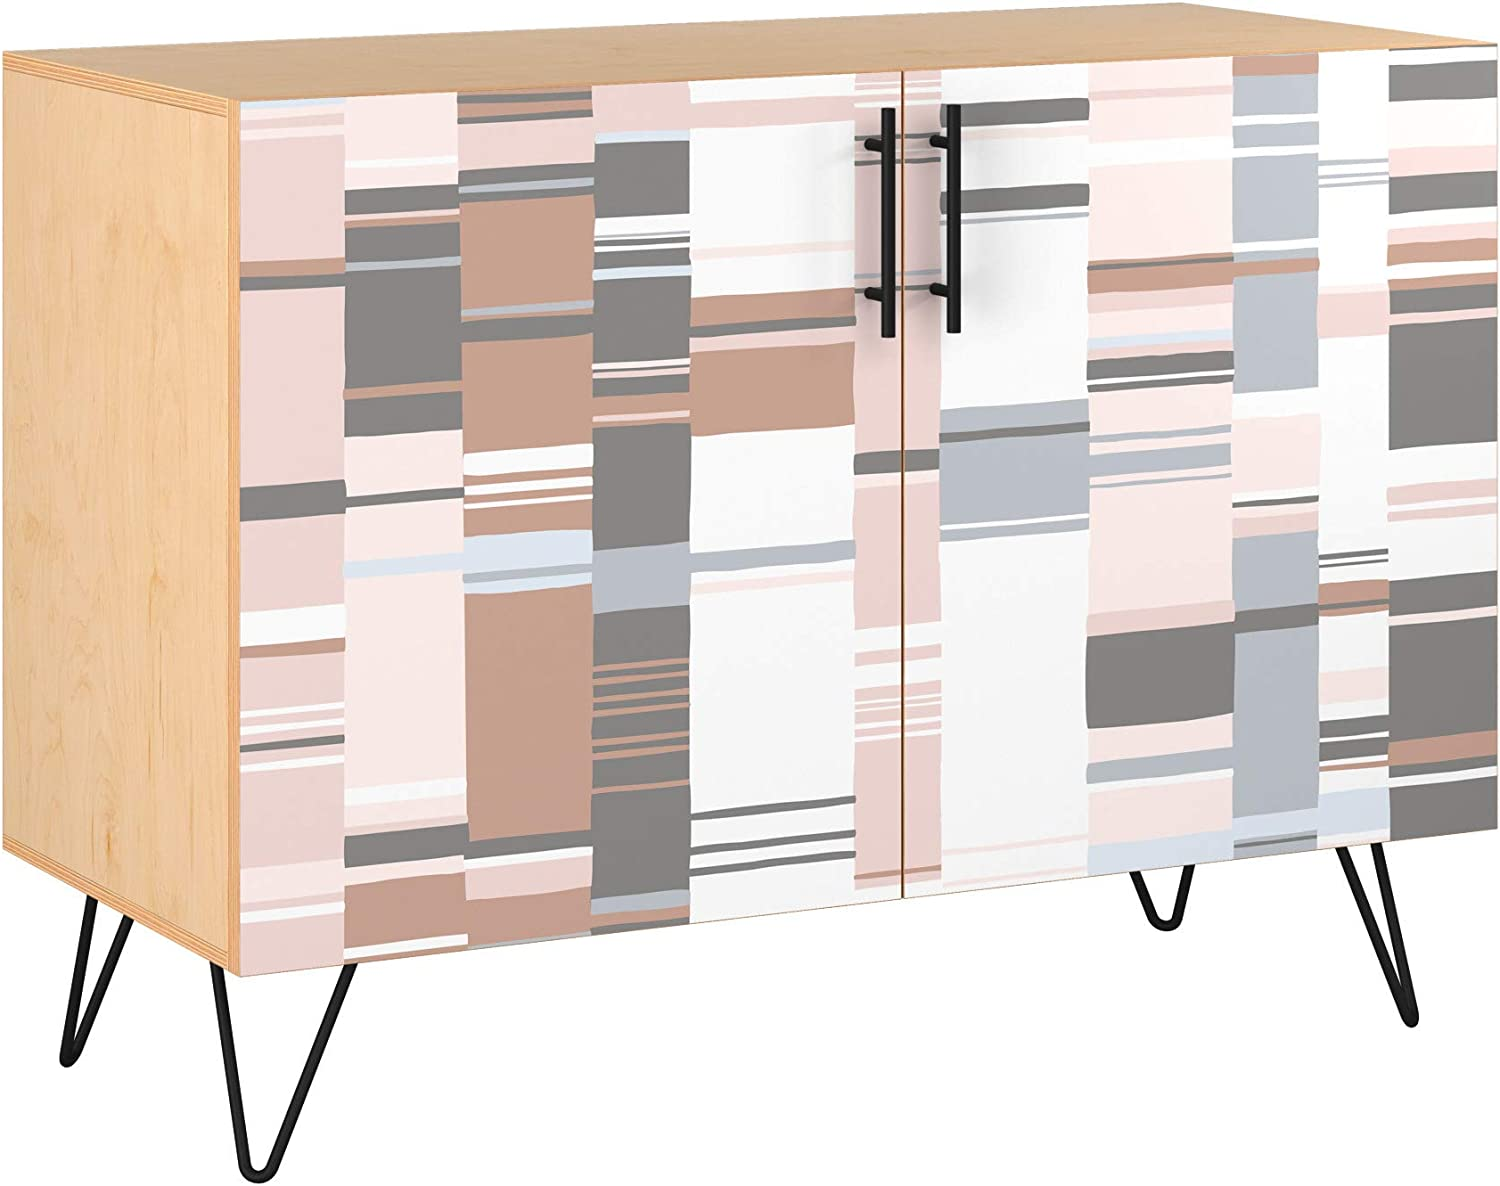 Poppy Credenza - Natural Sadie Max 51% OFF Design 5 Colors in Styl Regular discount 11 Base